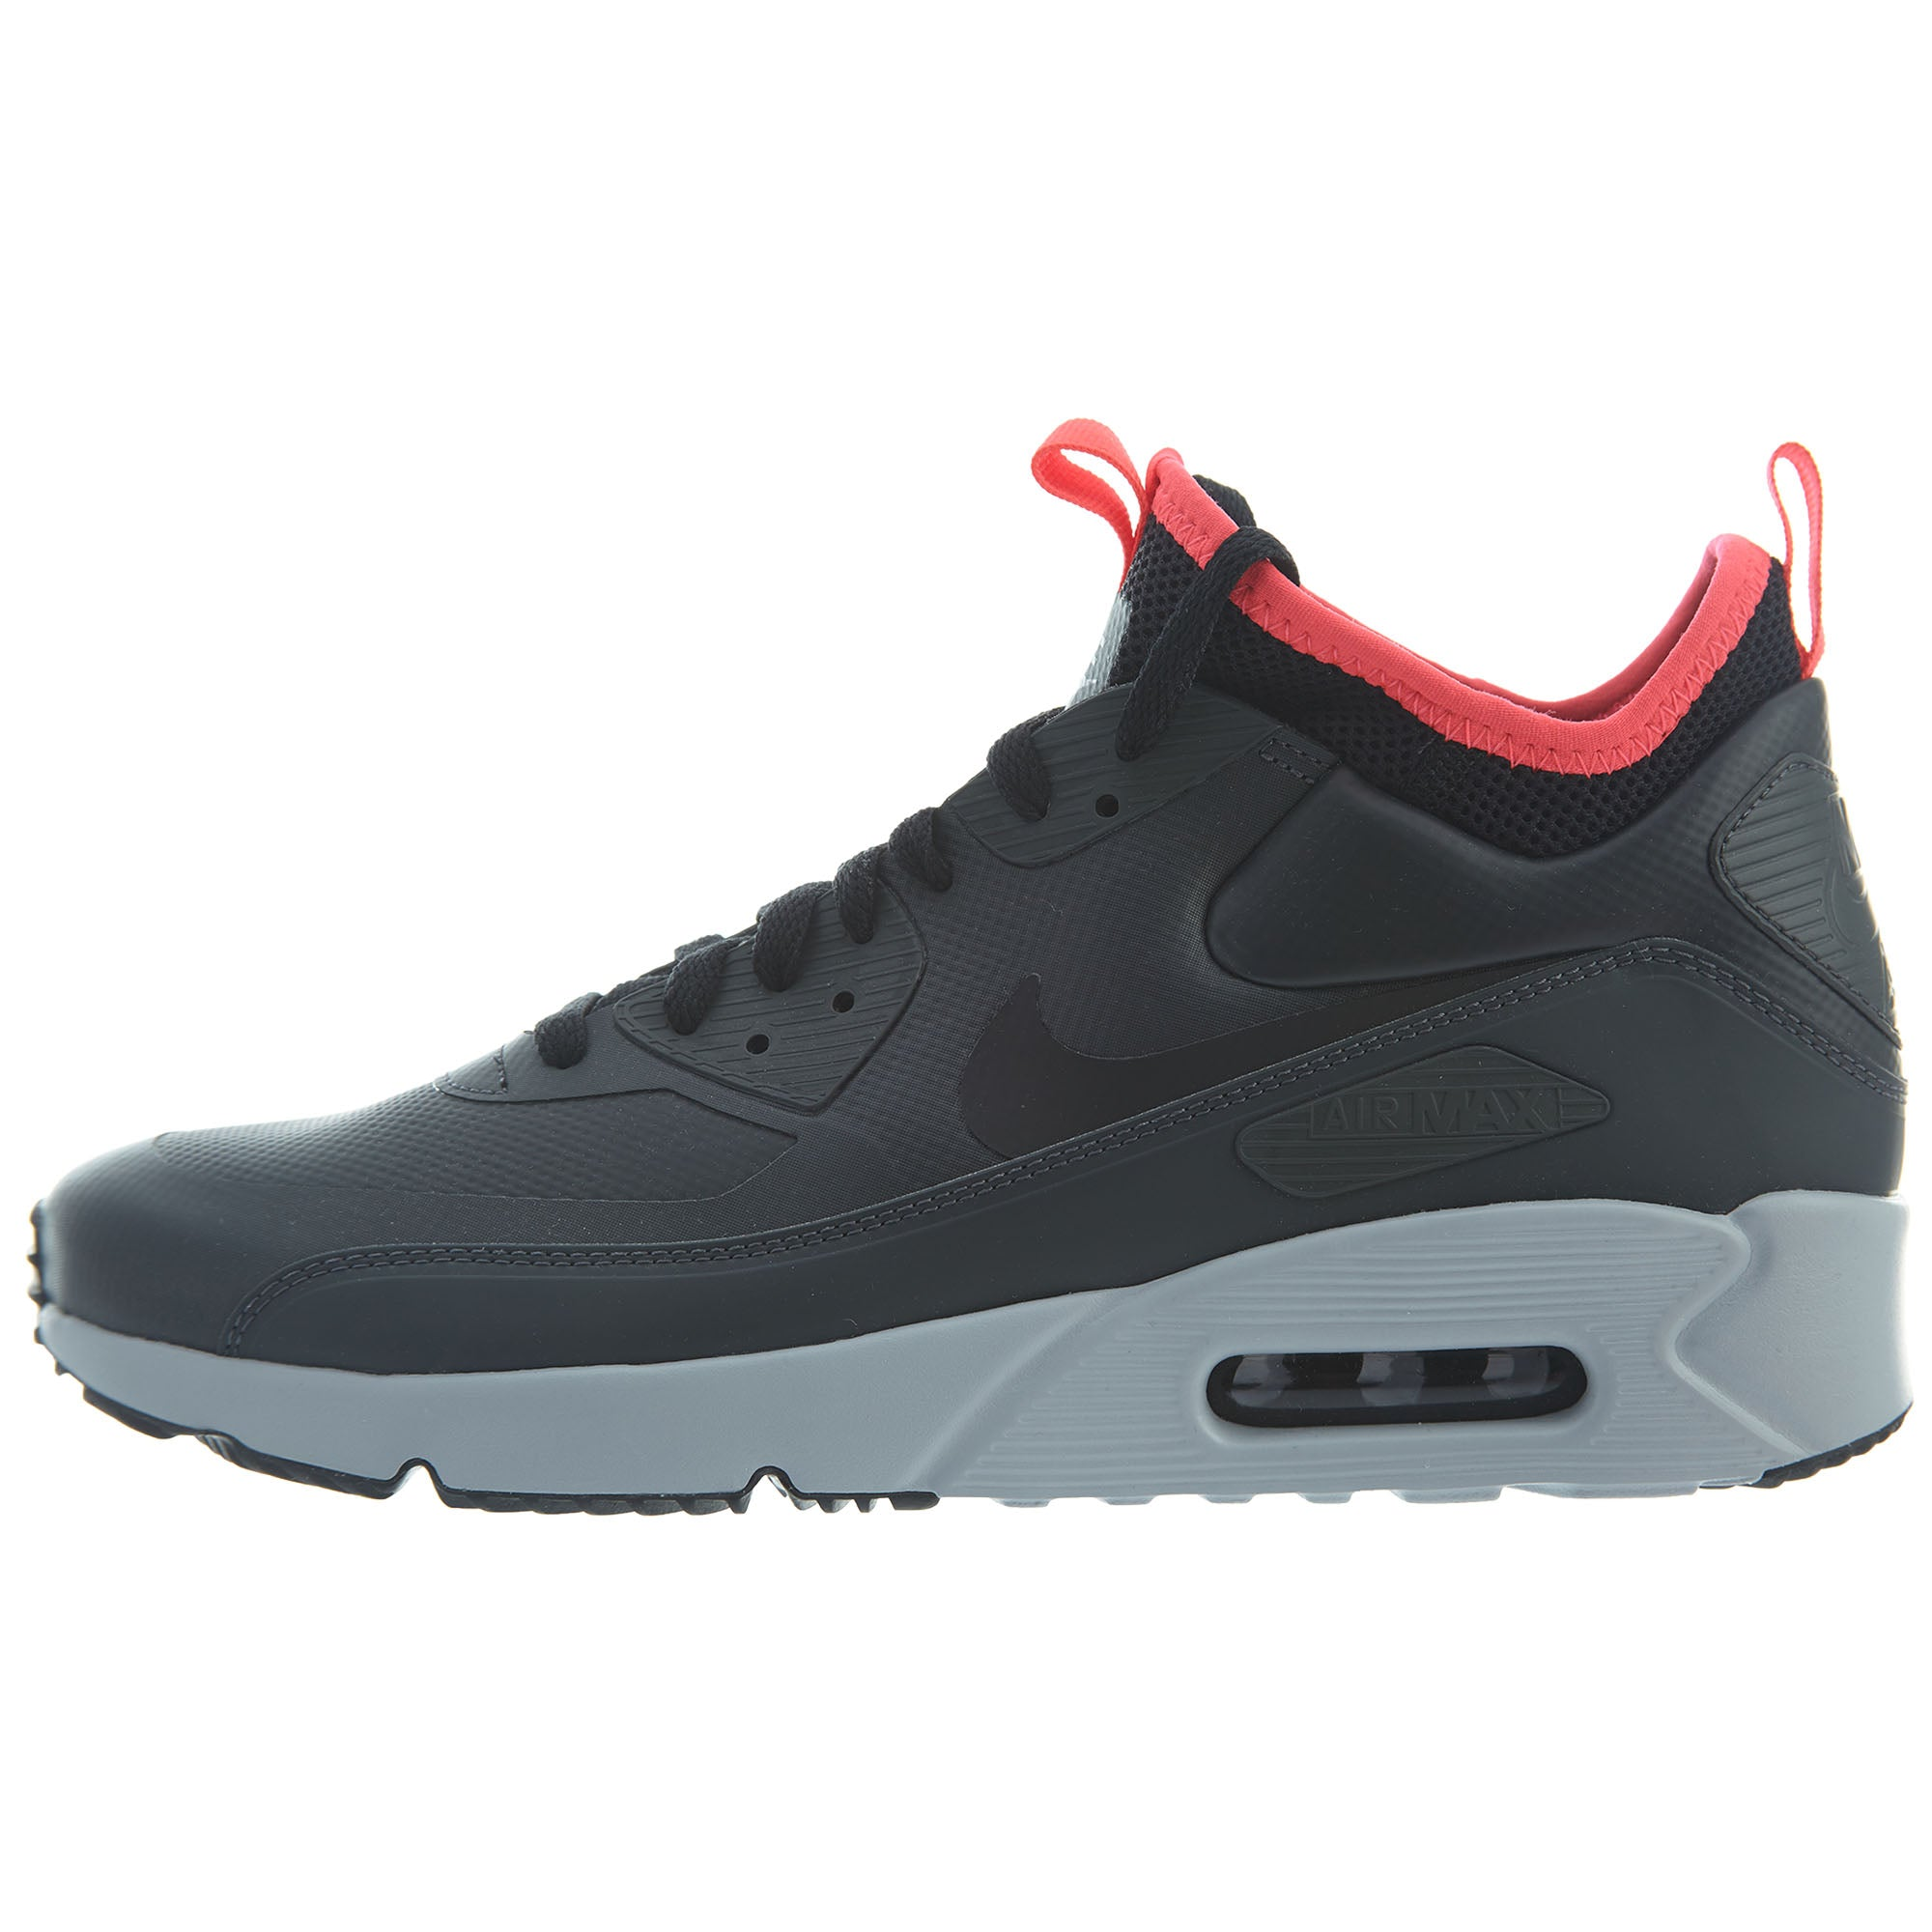 new product 2bbc4 c66cd Nike Air Max 90 Ultra Mid Winter Mens 924458-003 – Sneaker Experts